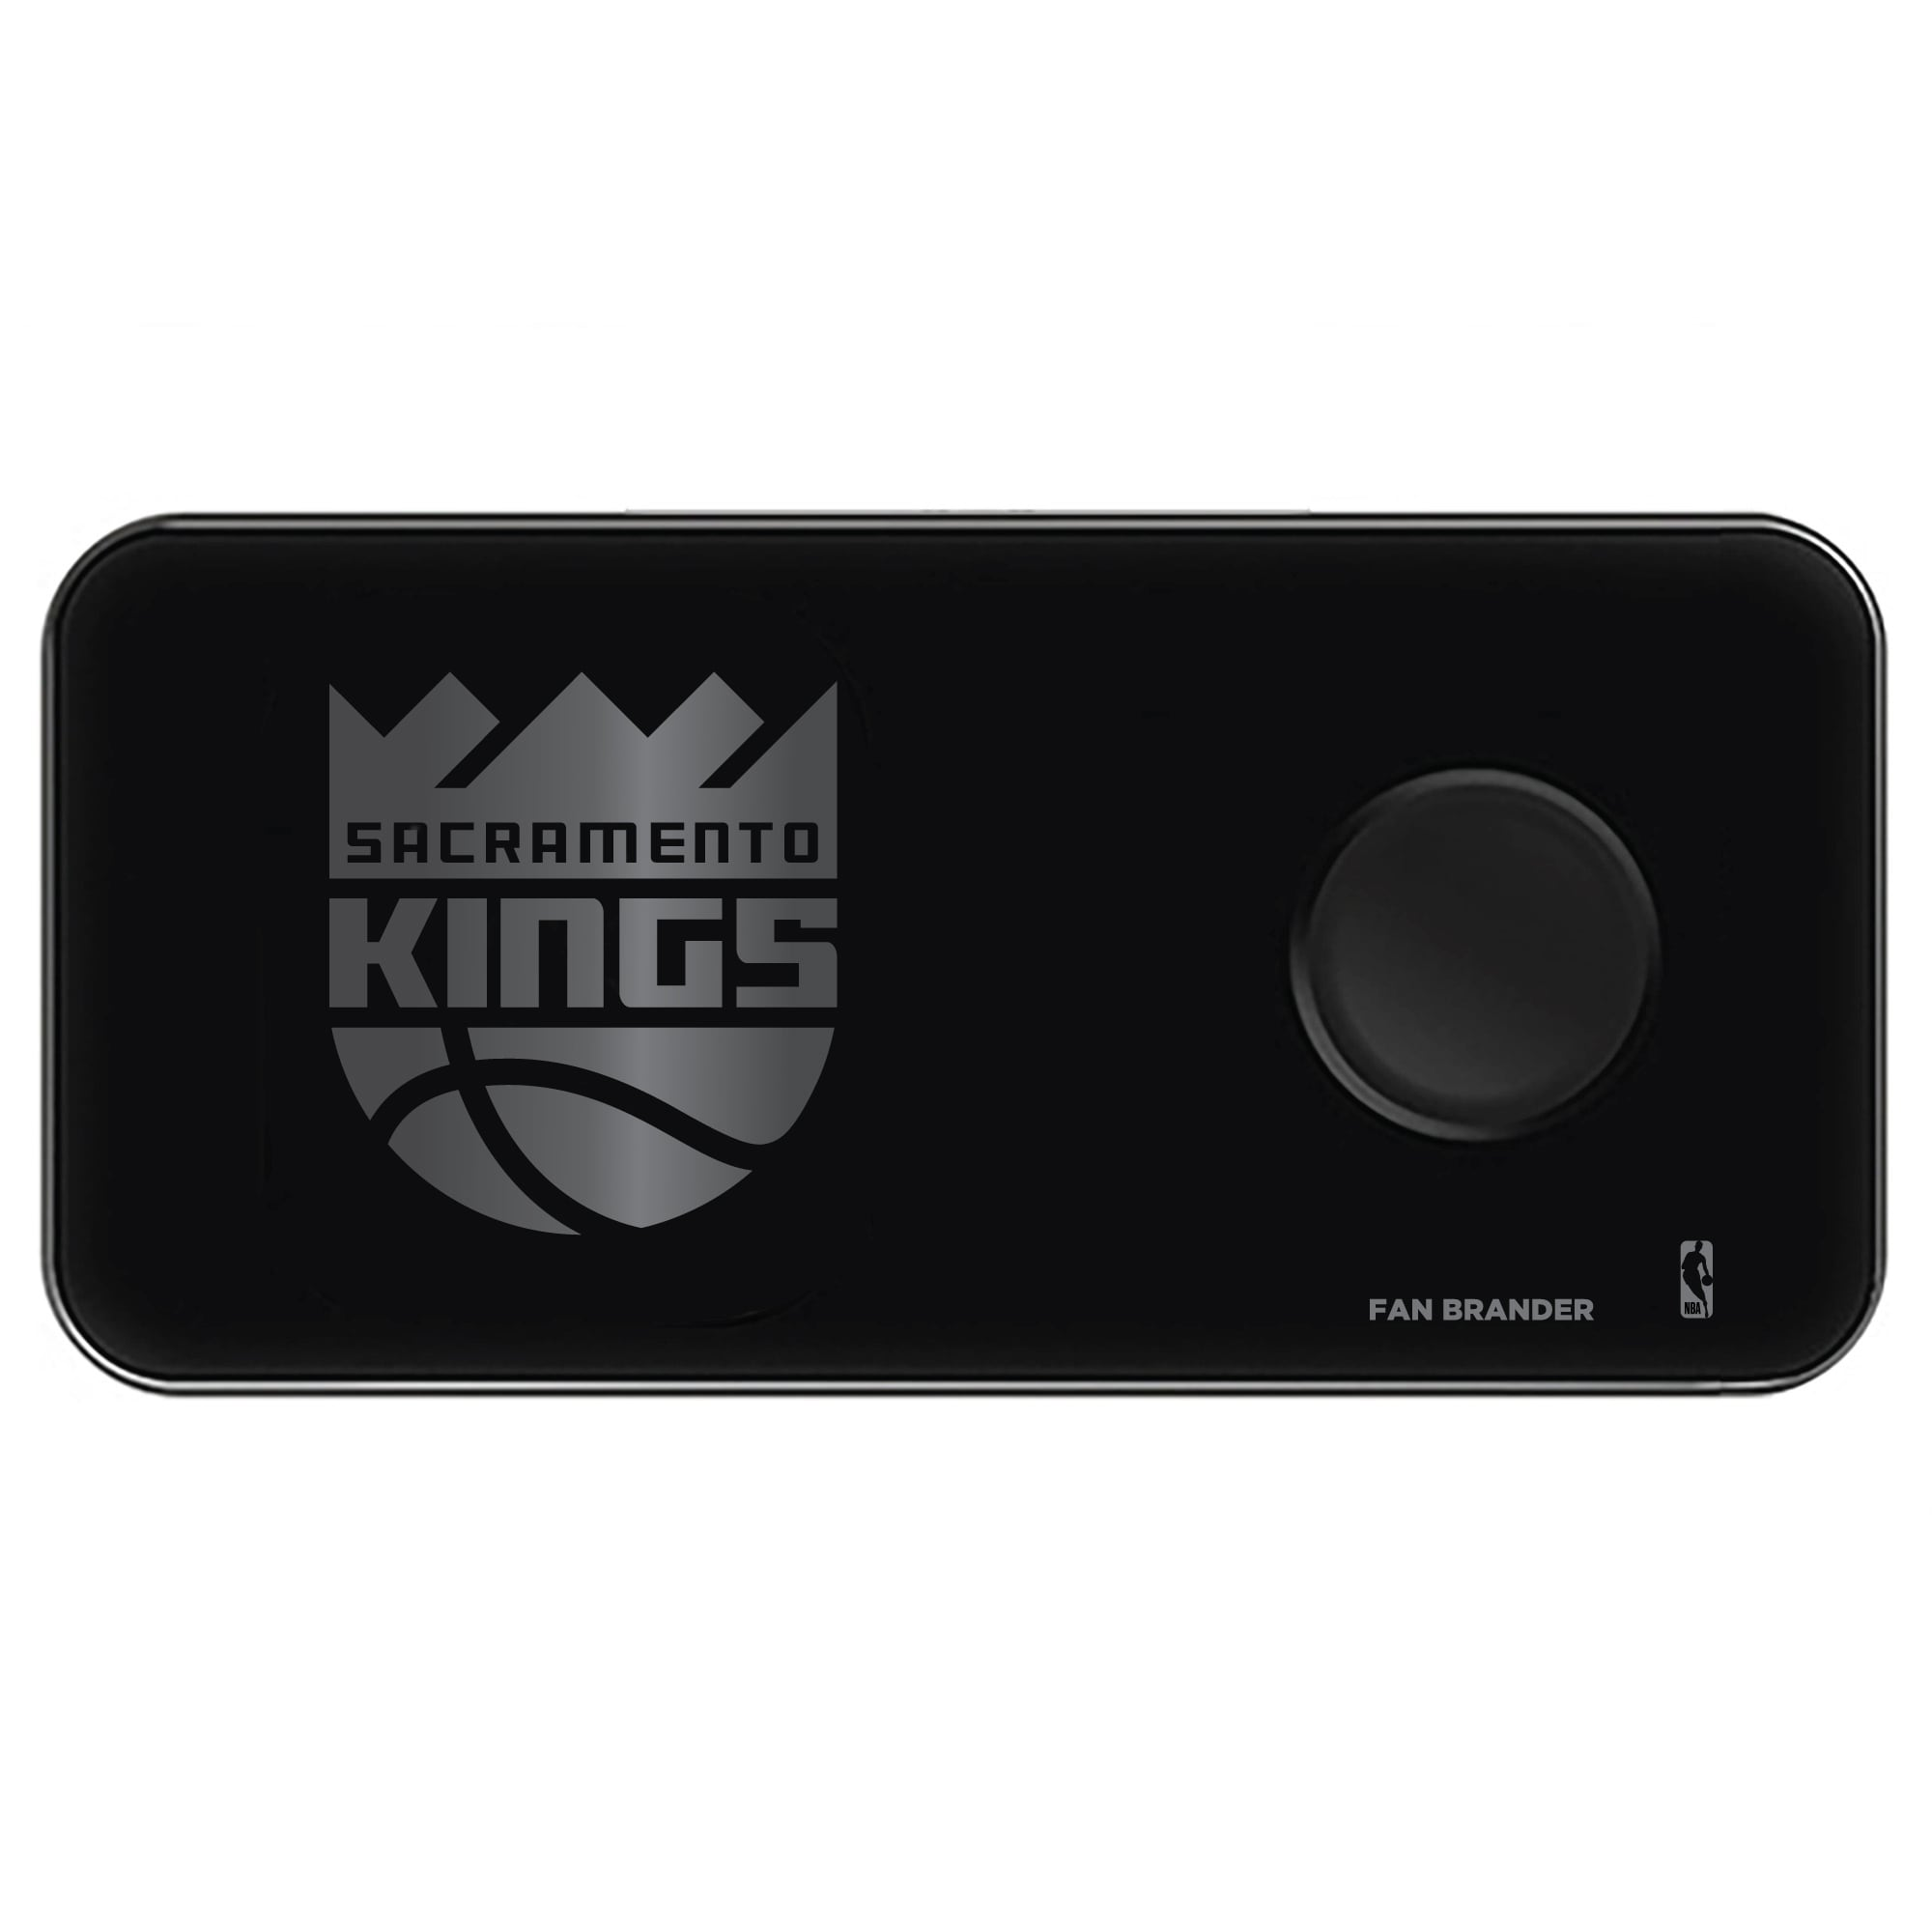 Sacramento Kings 3-in-1 Glass Wireless Charge Pad - Black